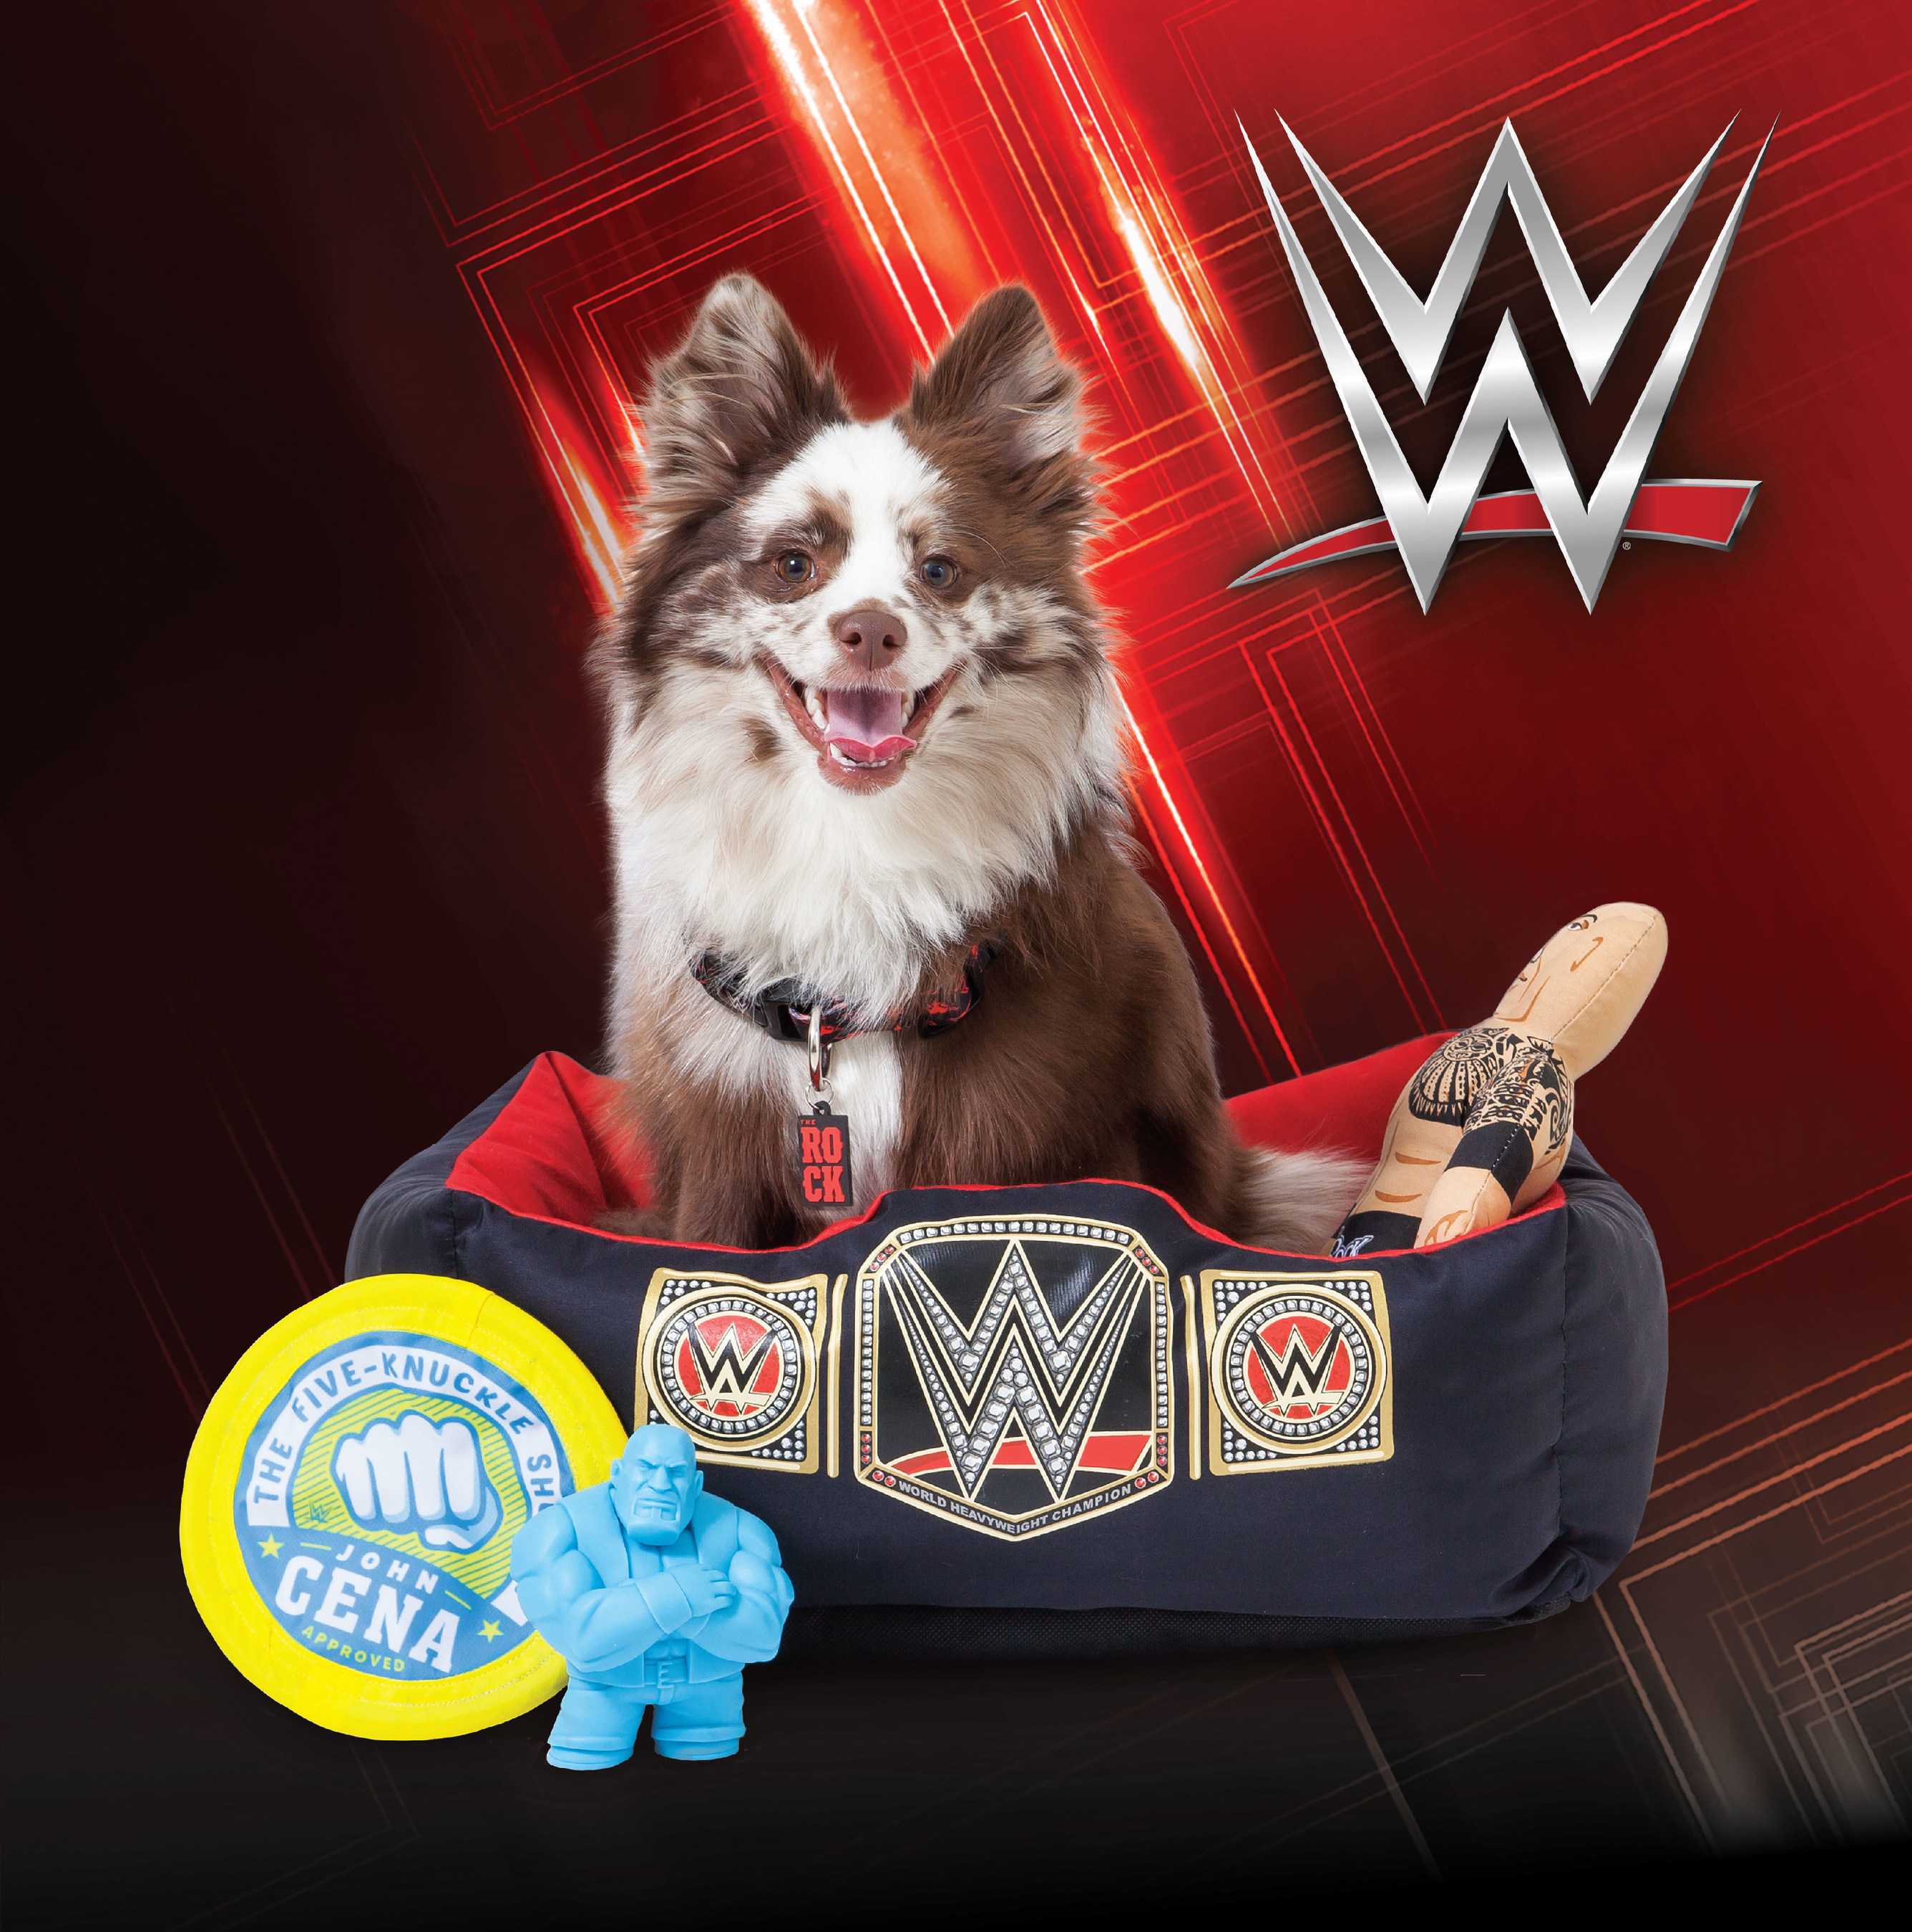 WWE' Pet Product Collection By Petmate' Is Now Available At Retail